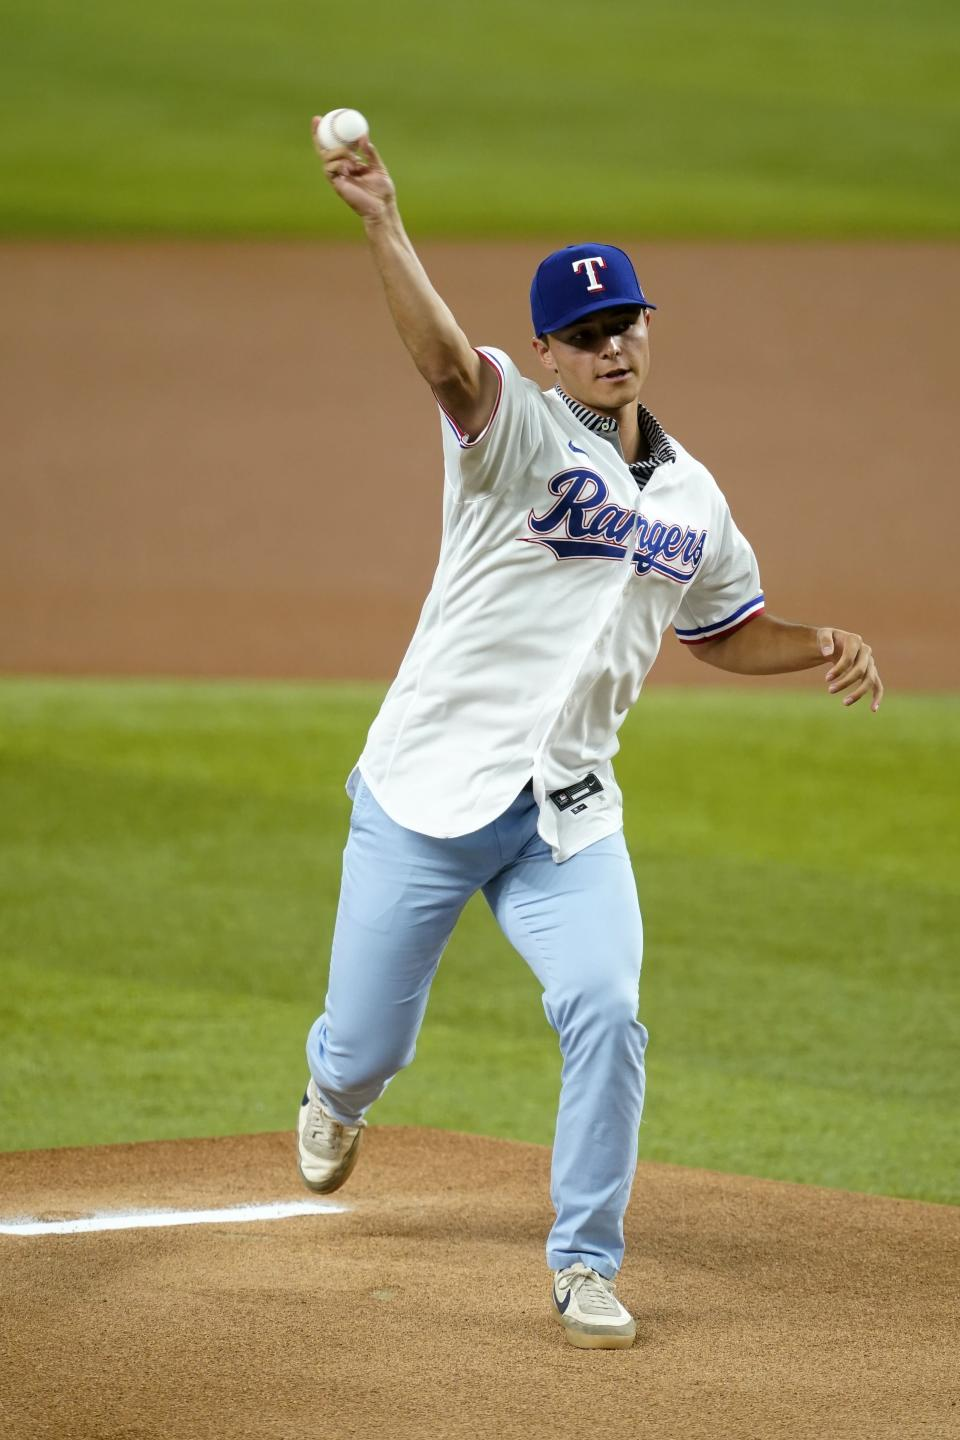 Texas Rangers first-round draft pick Jack Leiter throws out the ceremonial first pitch before the Rangers' baseball game against the Arizona Diamondbacks in Arlington, Texas, Wednesday, July 28, 2021. (AP Photo/Tony Gutierrez)